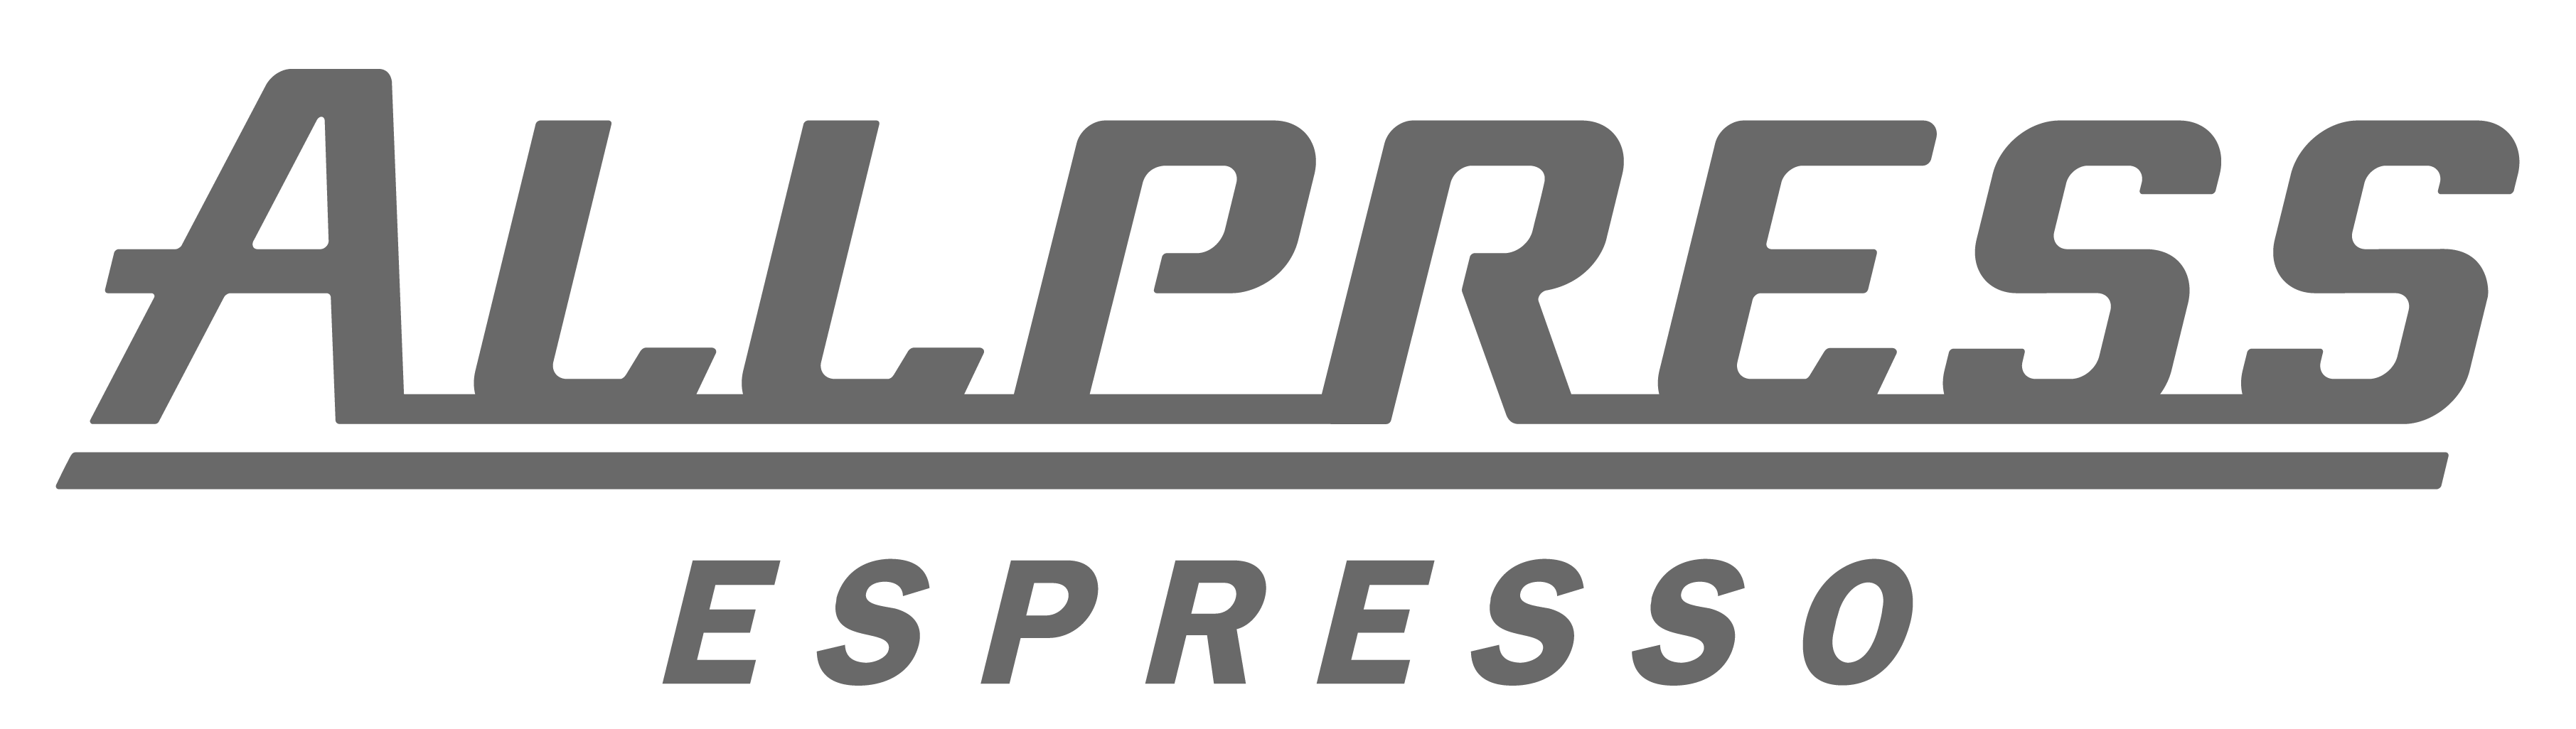 Allpress Espresso Coffee is one of AVIRO trustworthy suppliers with customised facemasks